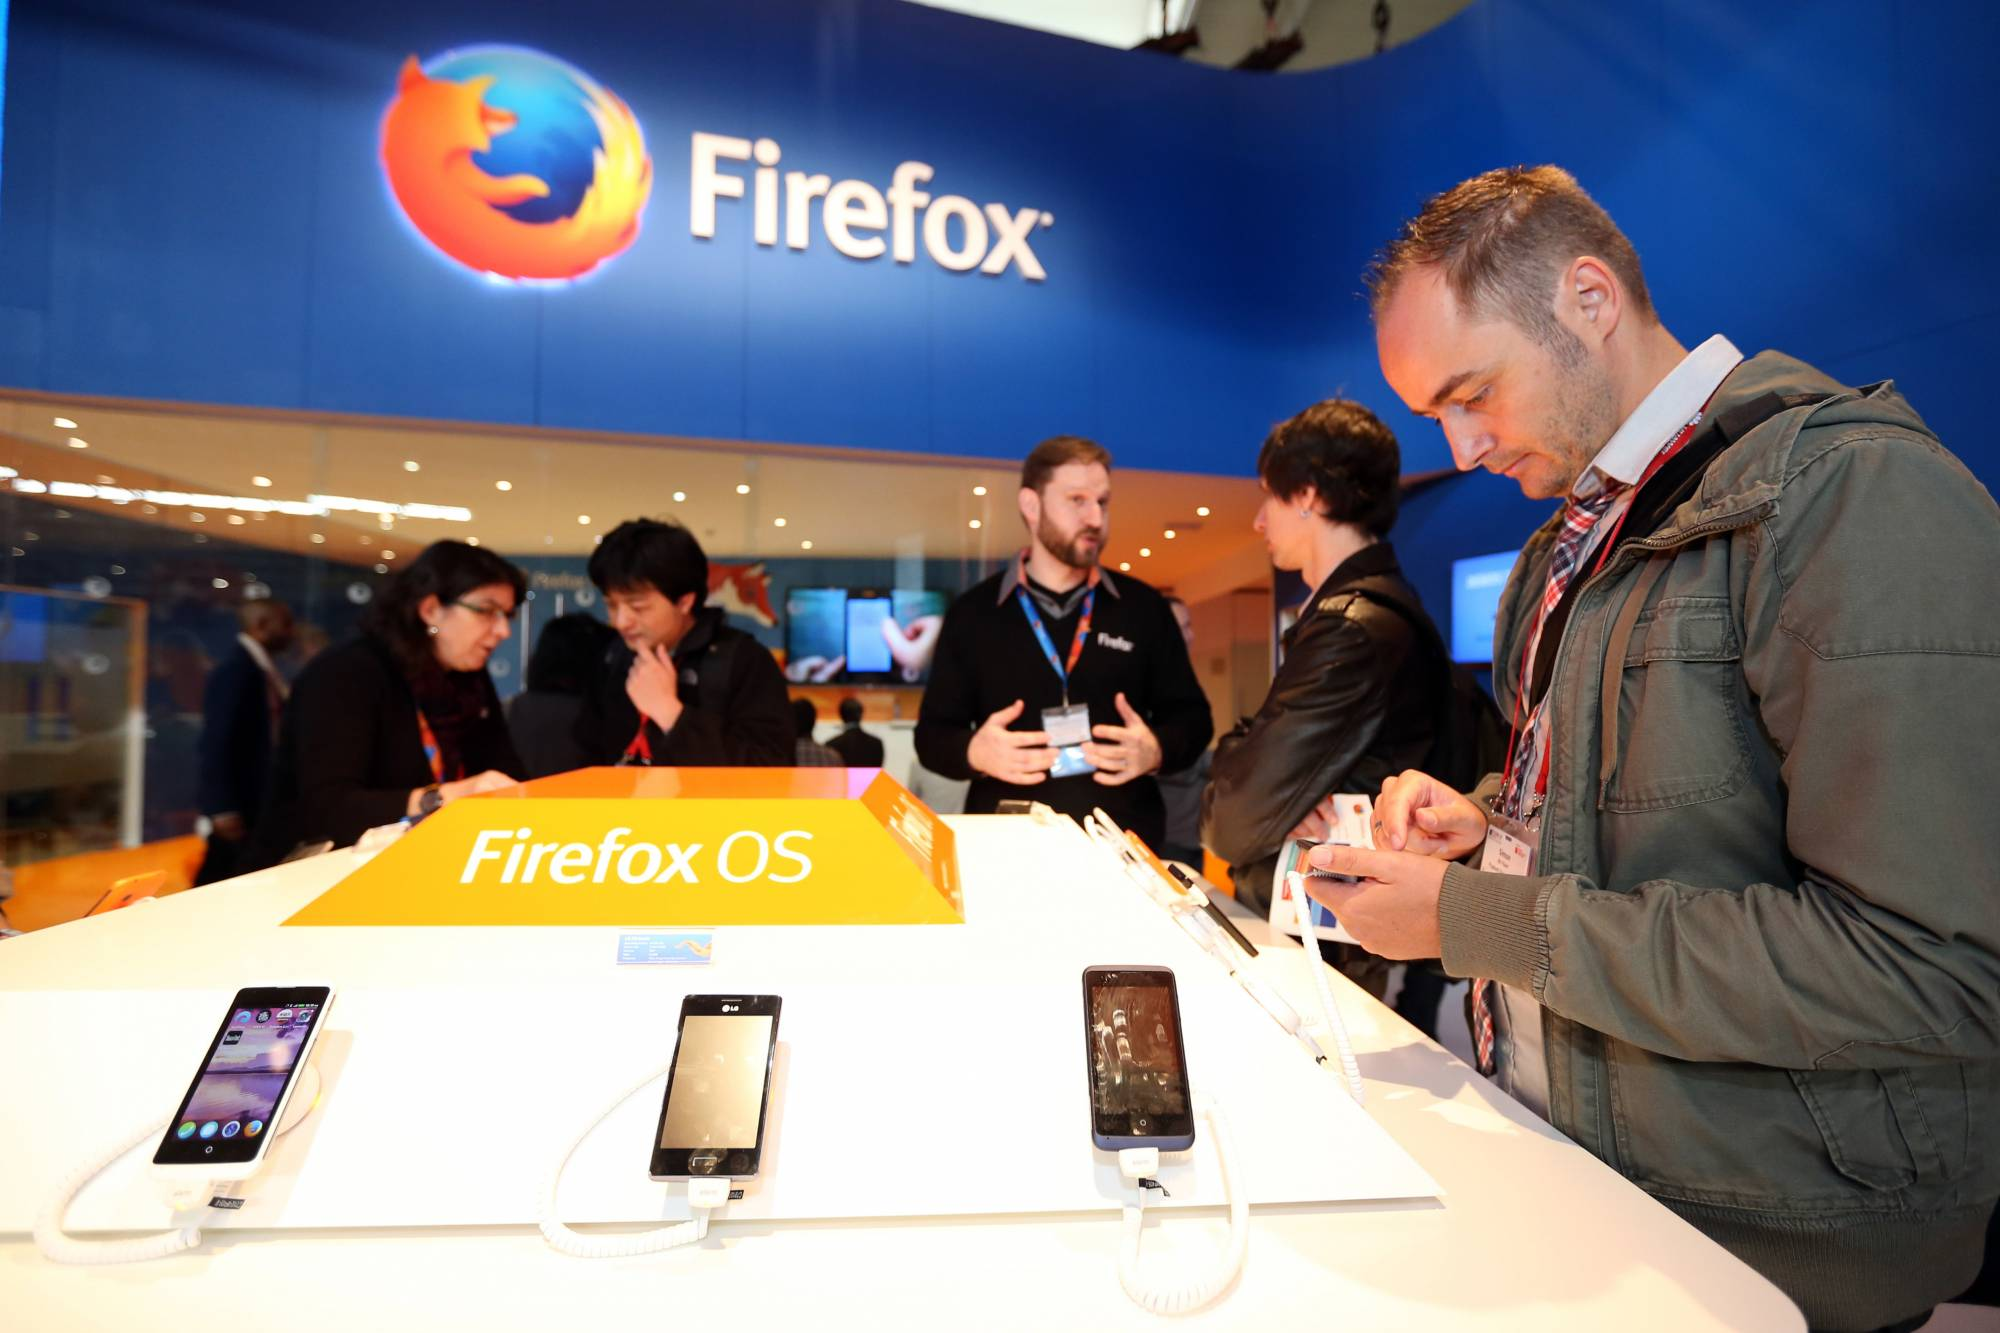 Mozilla to turn off data-tracking in Firefox browser 'by default.'